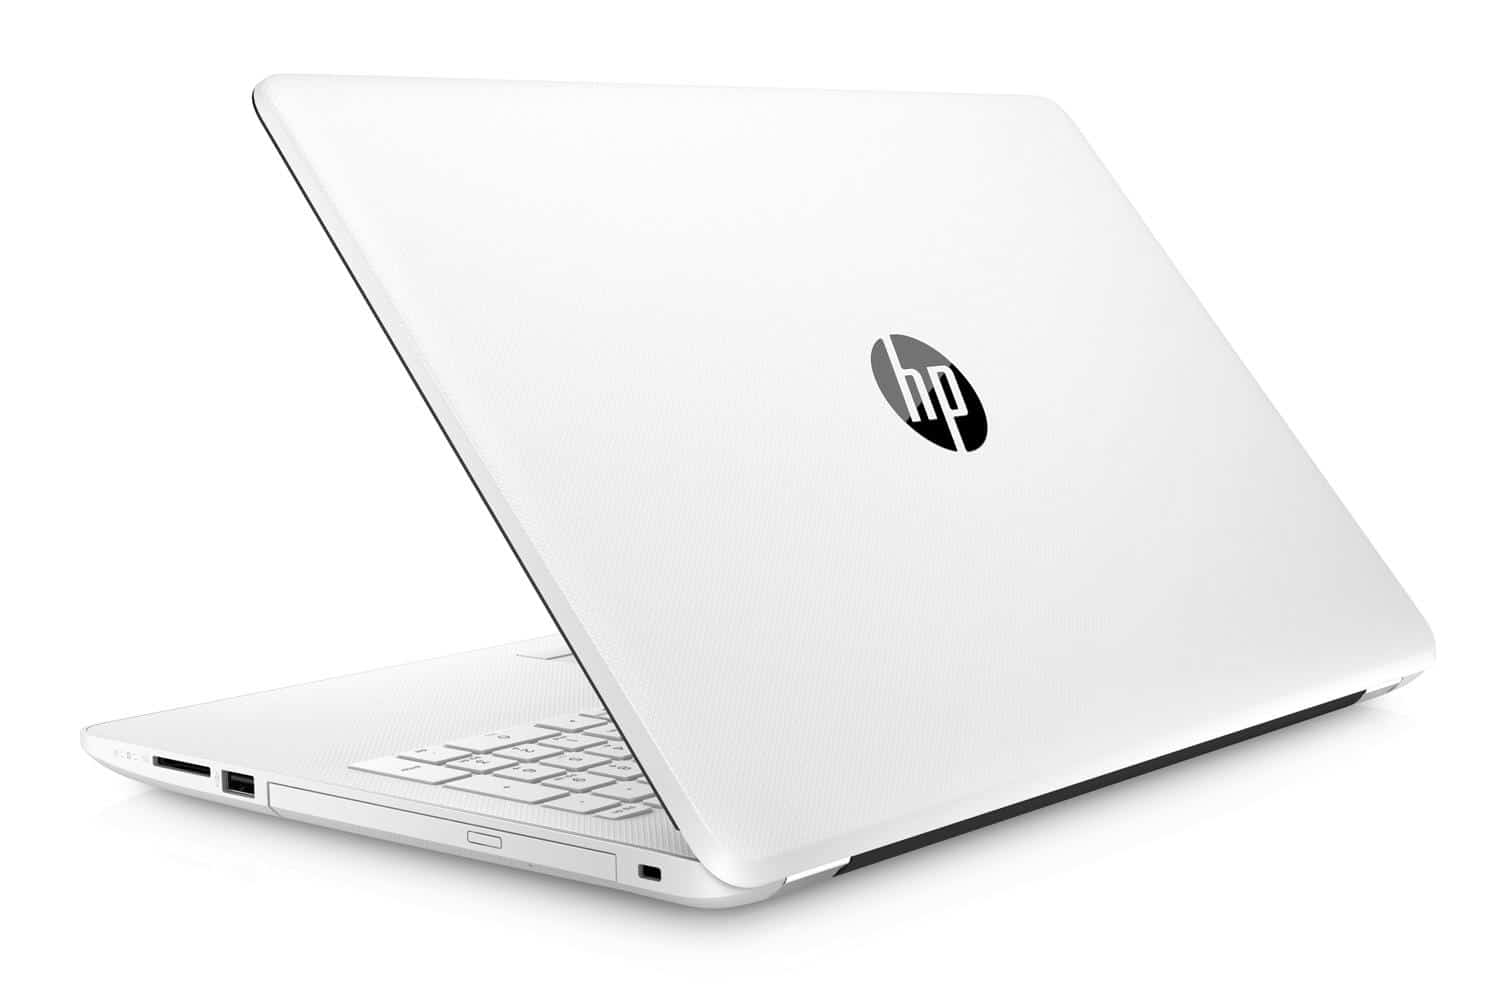 HP 15-bw050nf, PC portable 15 pouces Blanc Full HD A9 Stoney 8 Go pack 529€